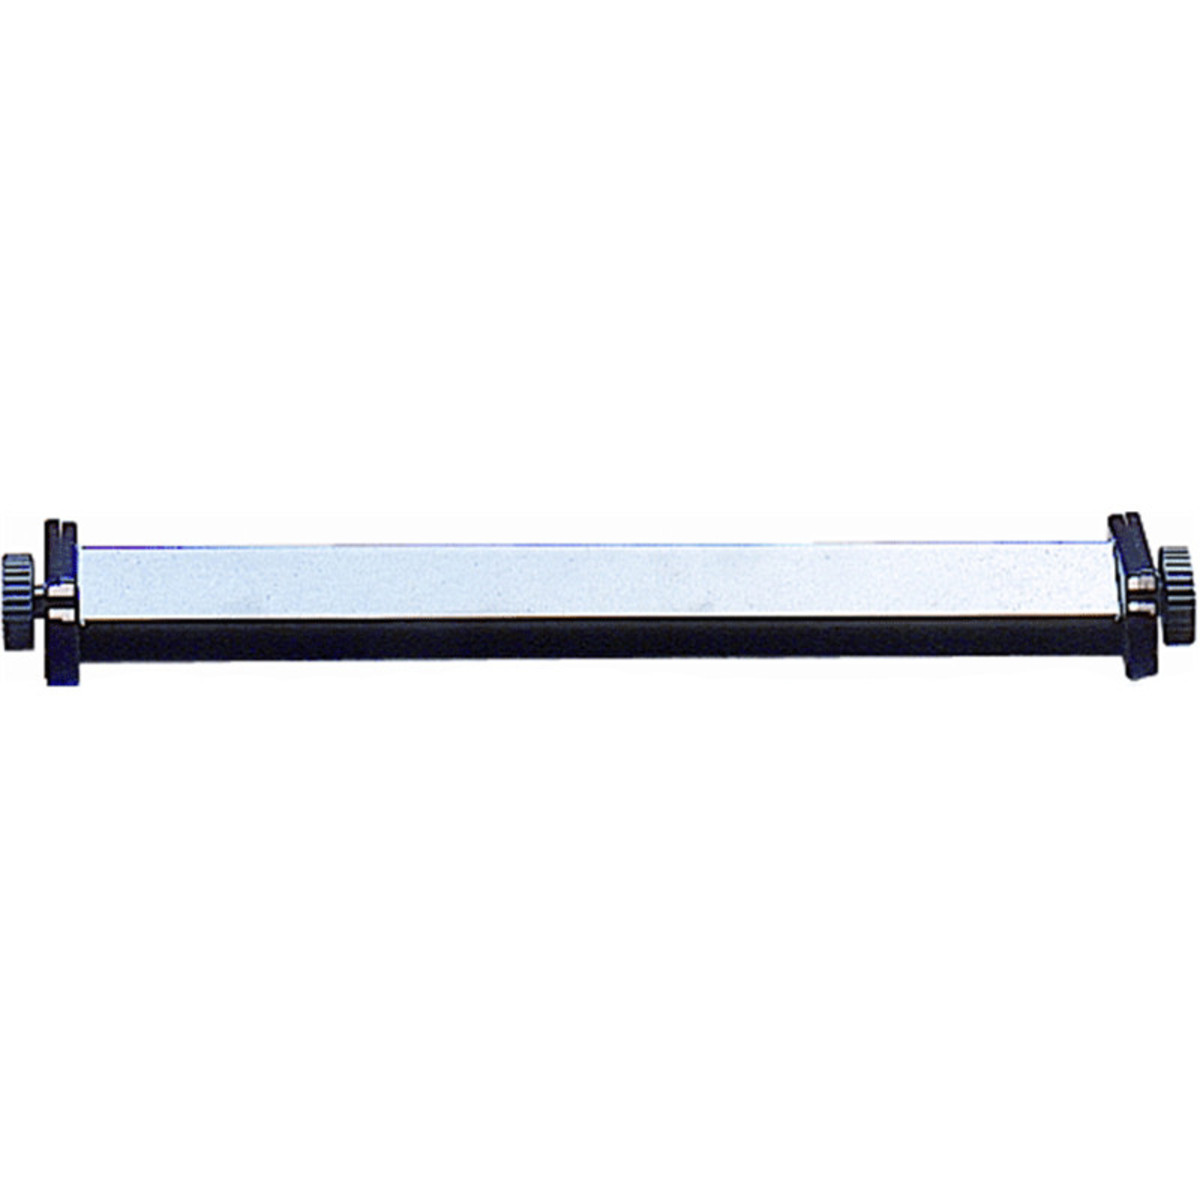 Click to view product details and reviews for Quiklok Zm 25 Add On Crossbar For Zm 20.